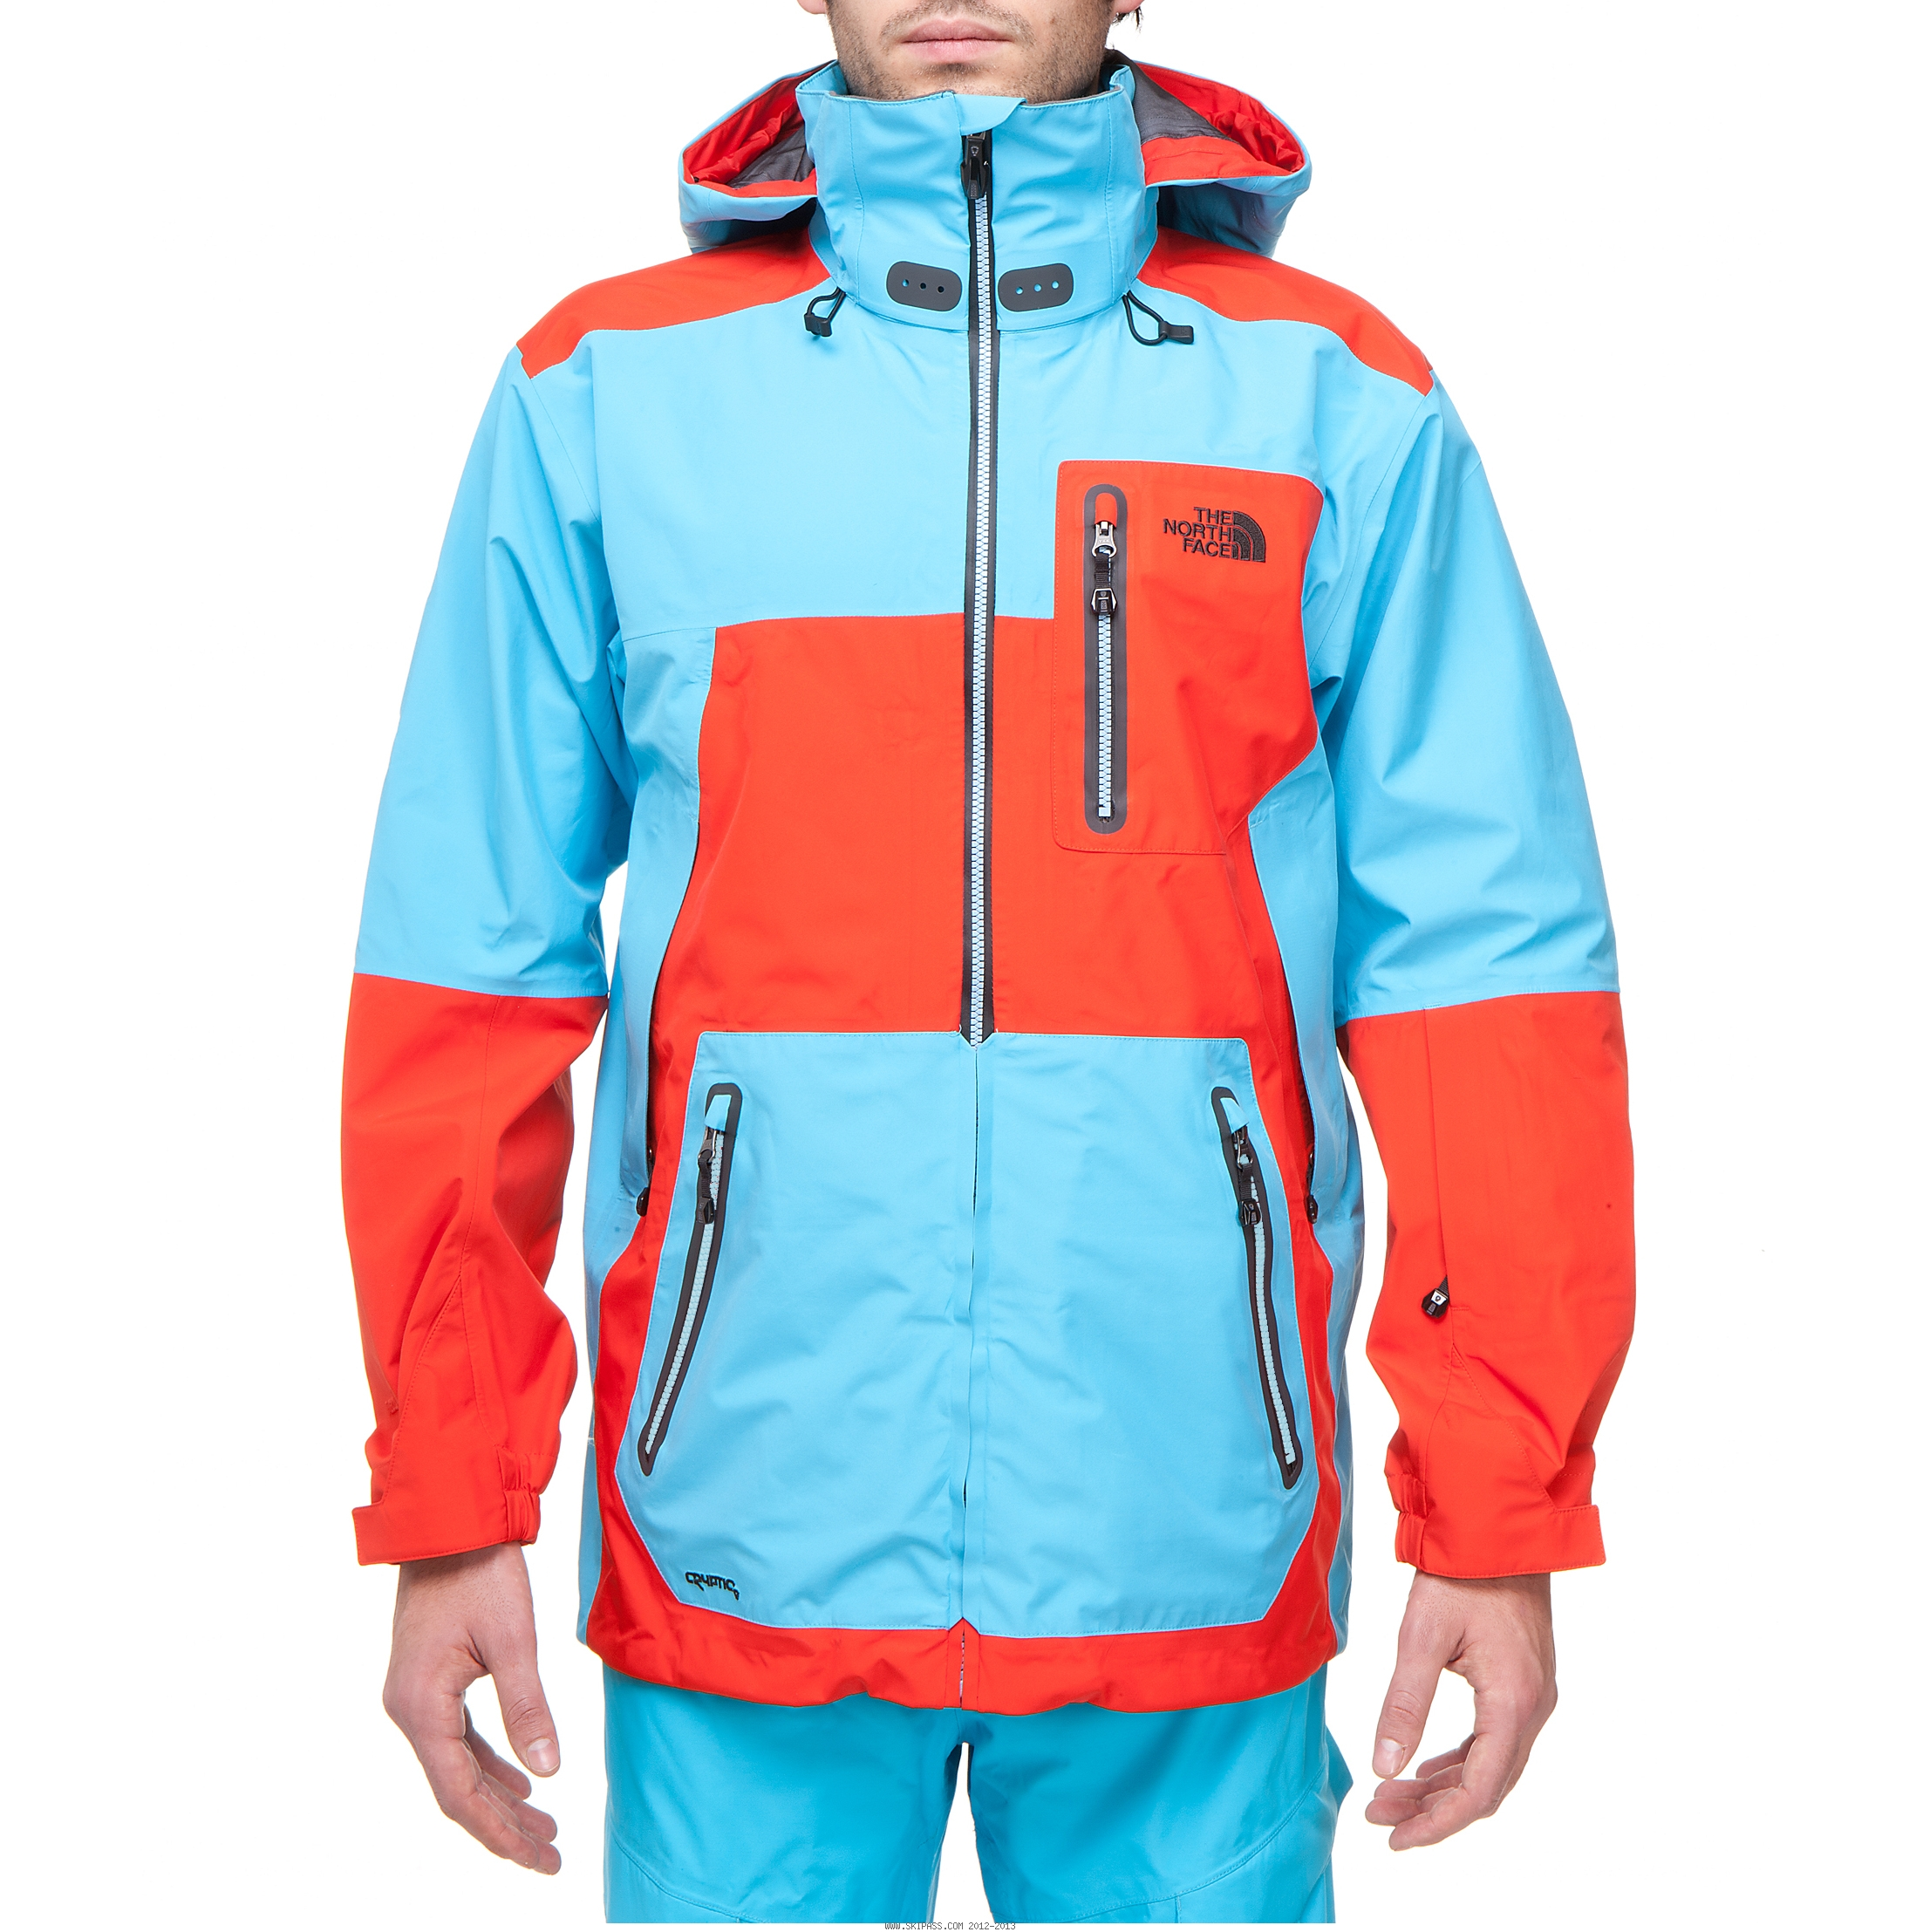 North North Face The 2013 The OFwqHz07 Spineology 5X1qwdxw